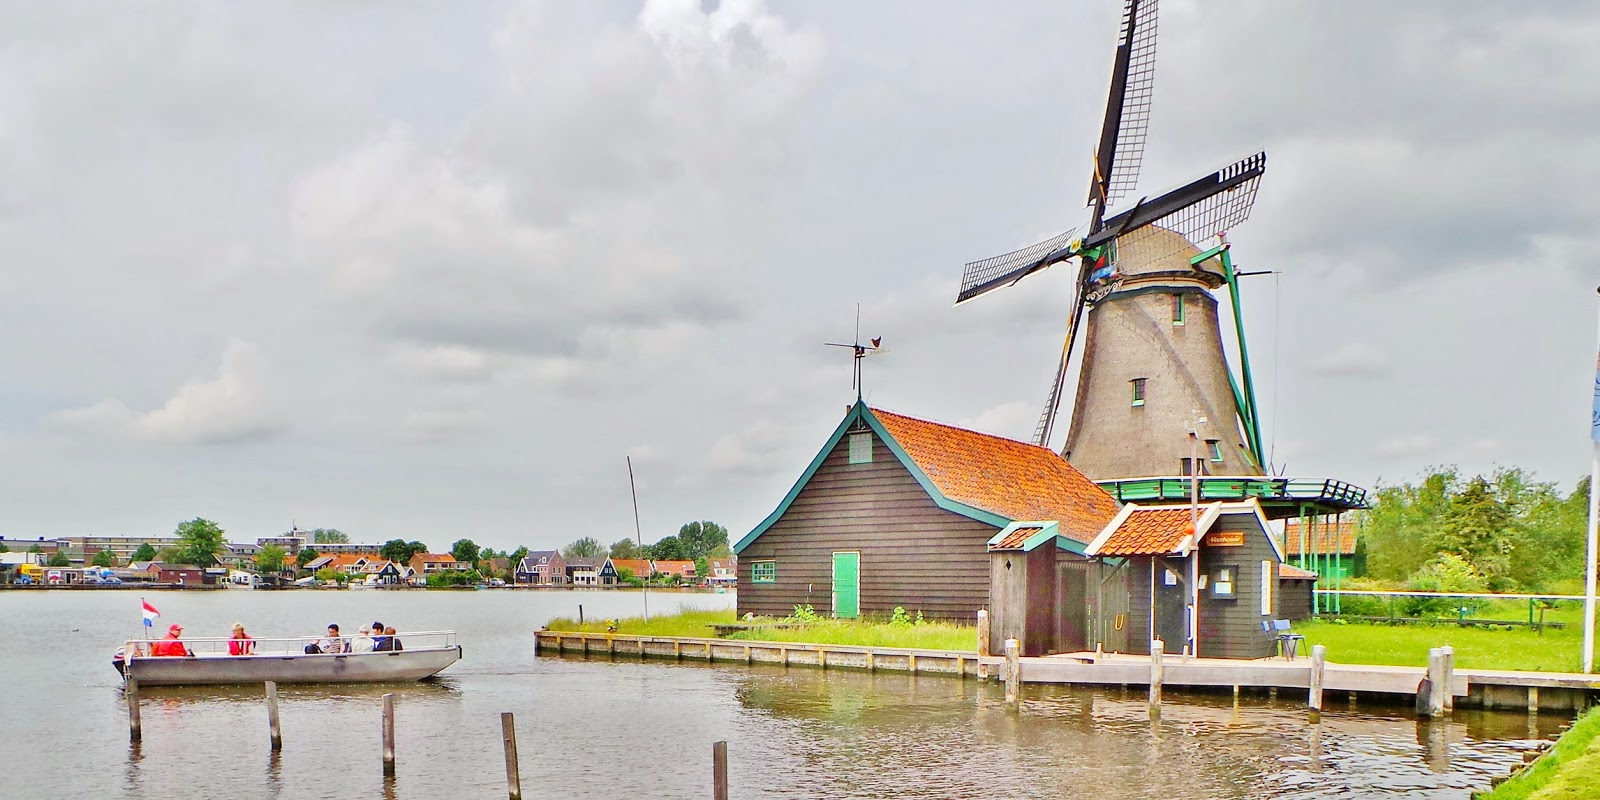 De Zoeker and De Bonte Hen oil mills